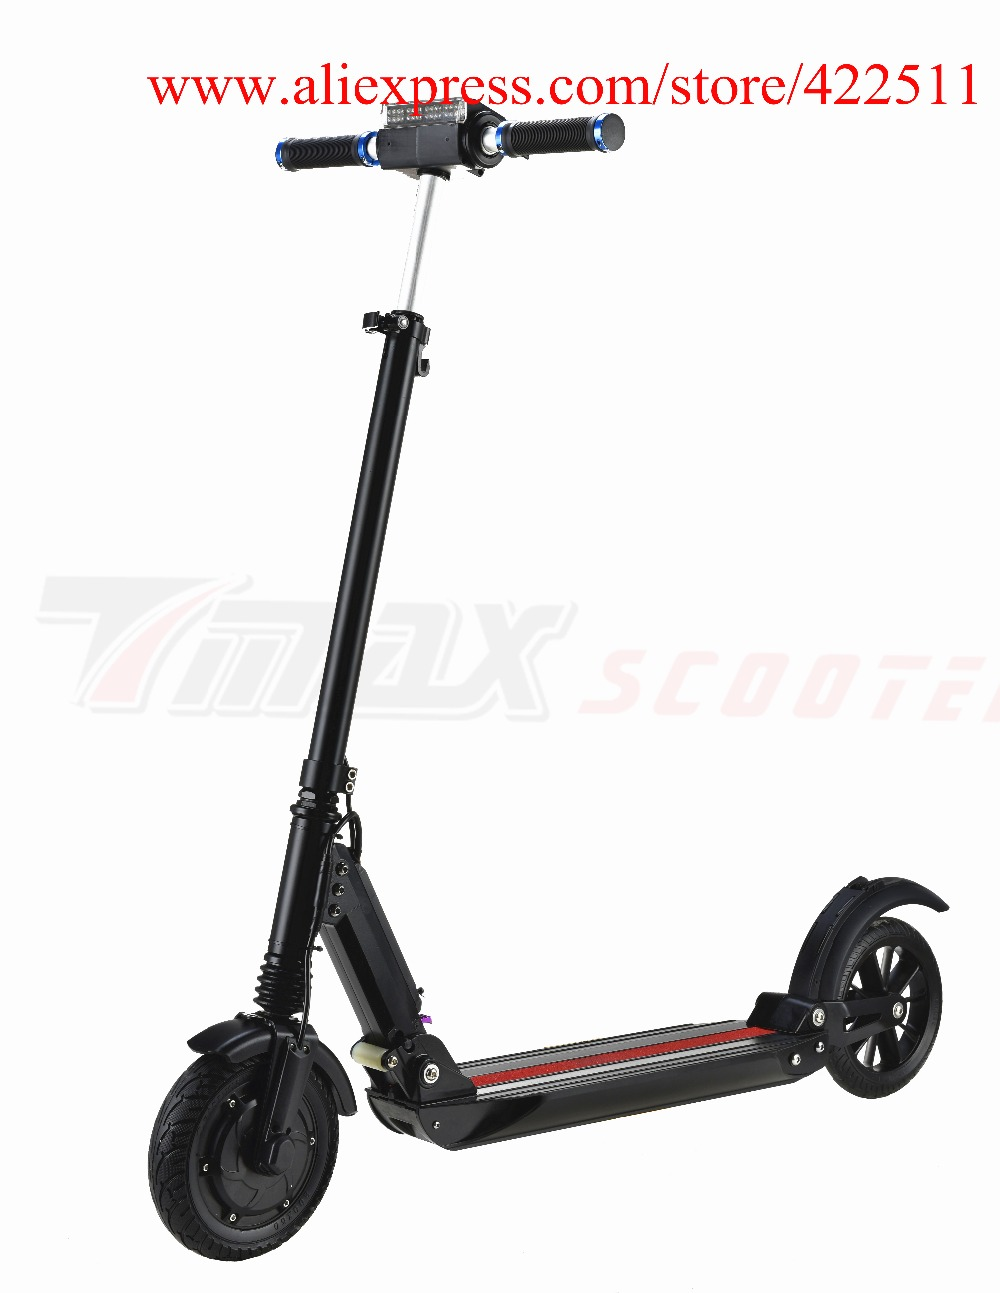 2016 New Popular 250W 24V Electric Scooter 2-Wheel Electric Standing Scooter Foldable Electric Bike With Lithium Battery 2016 500w powerful two wheel mini foldable electric scooter 48v 15 6a lithium e bike disc brake 10 inch wheel e scooter